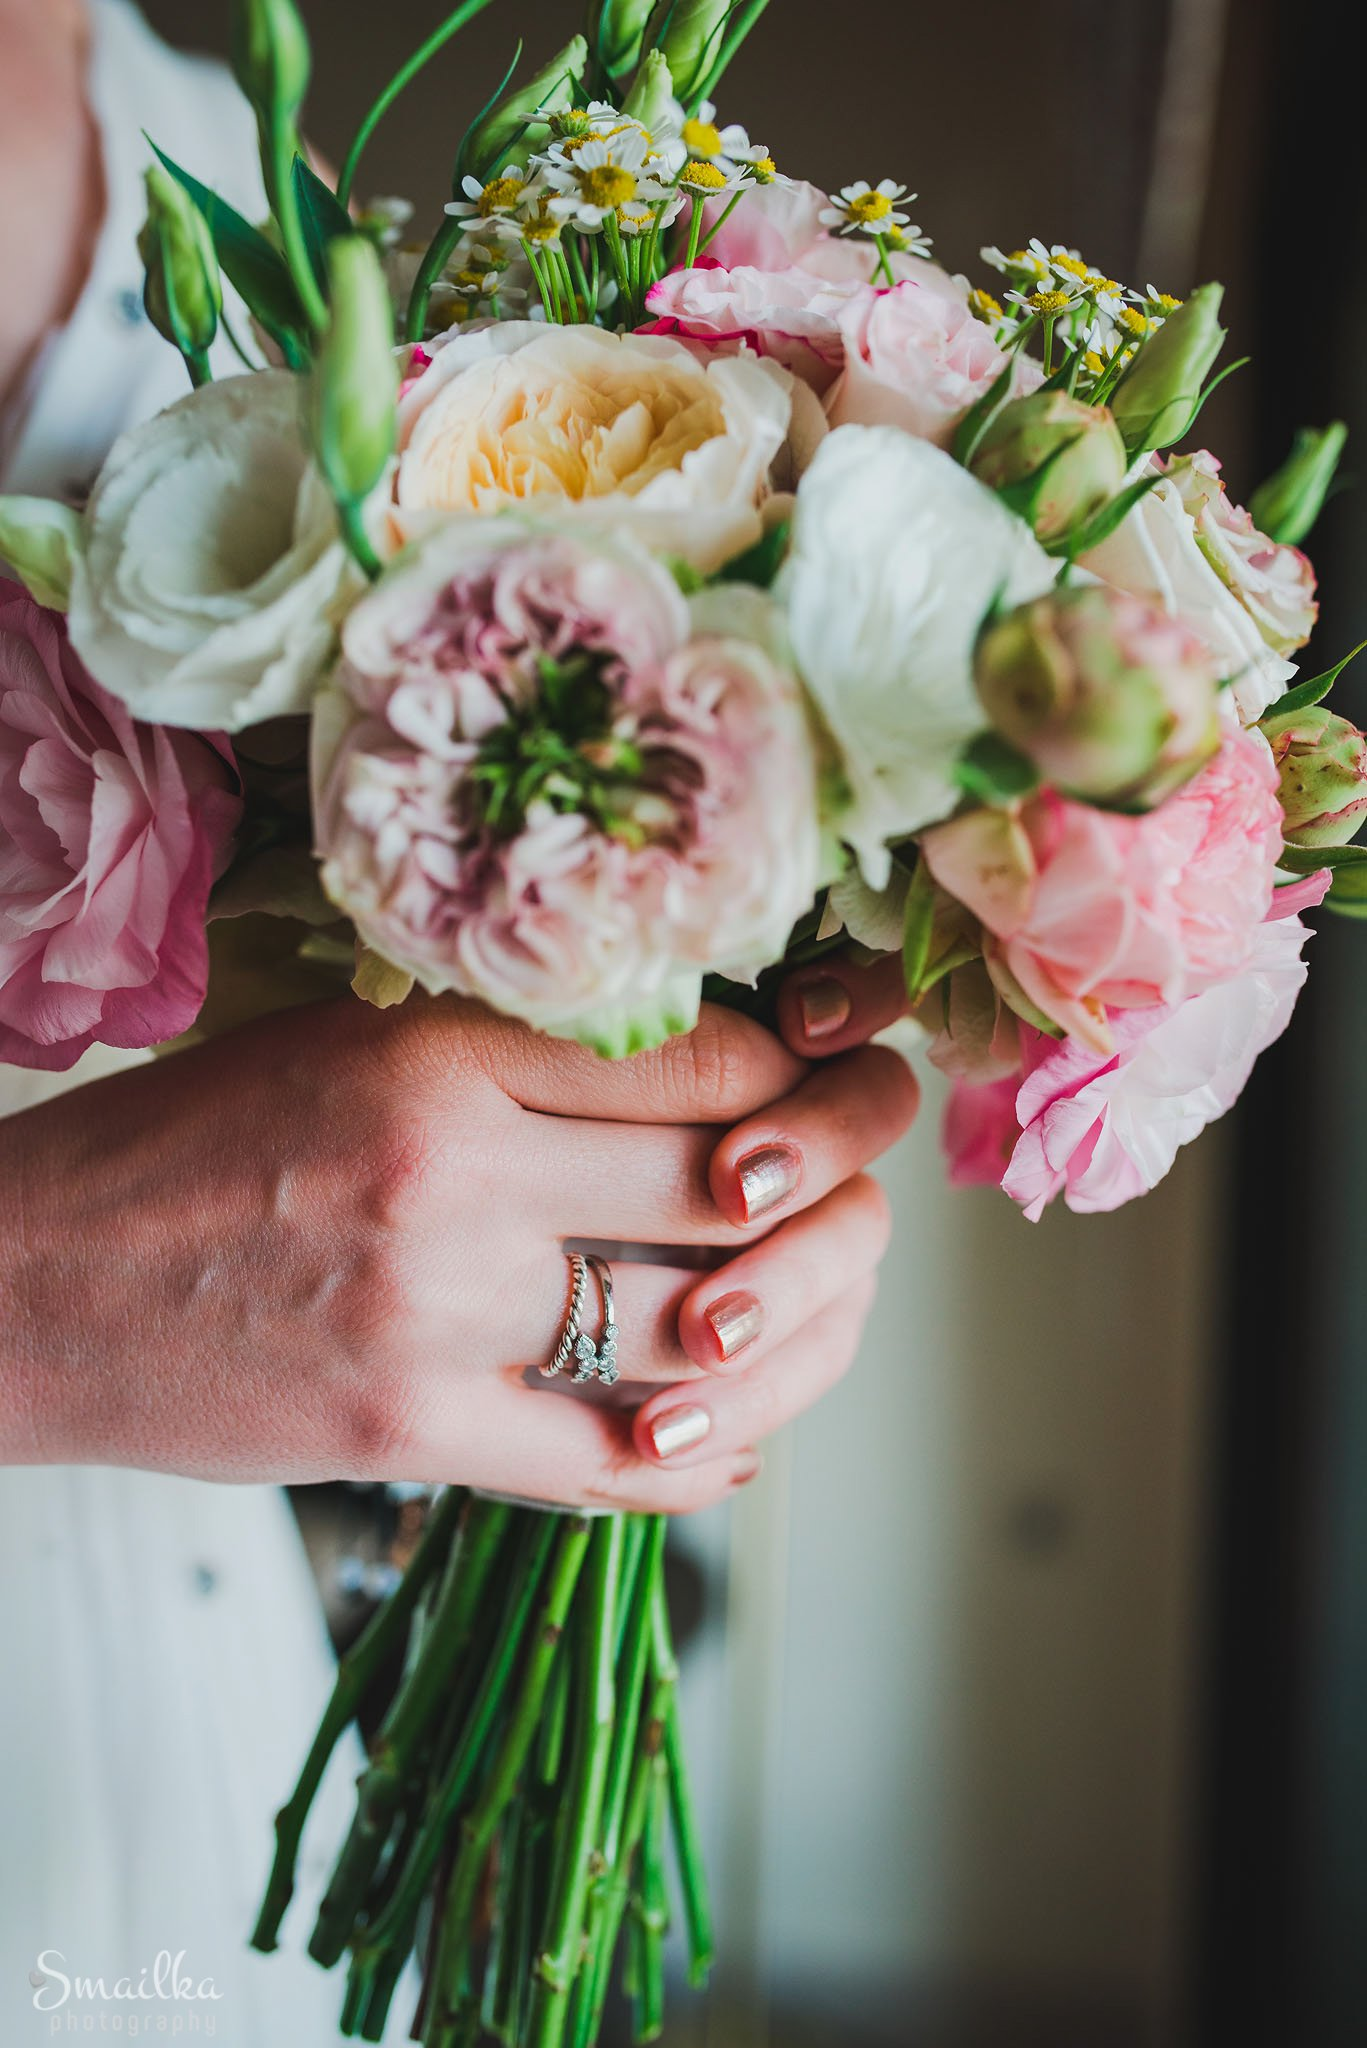 Bride is holding a wedding bouquet of fresh flowers